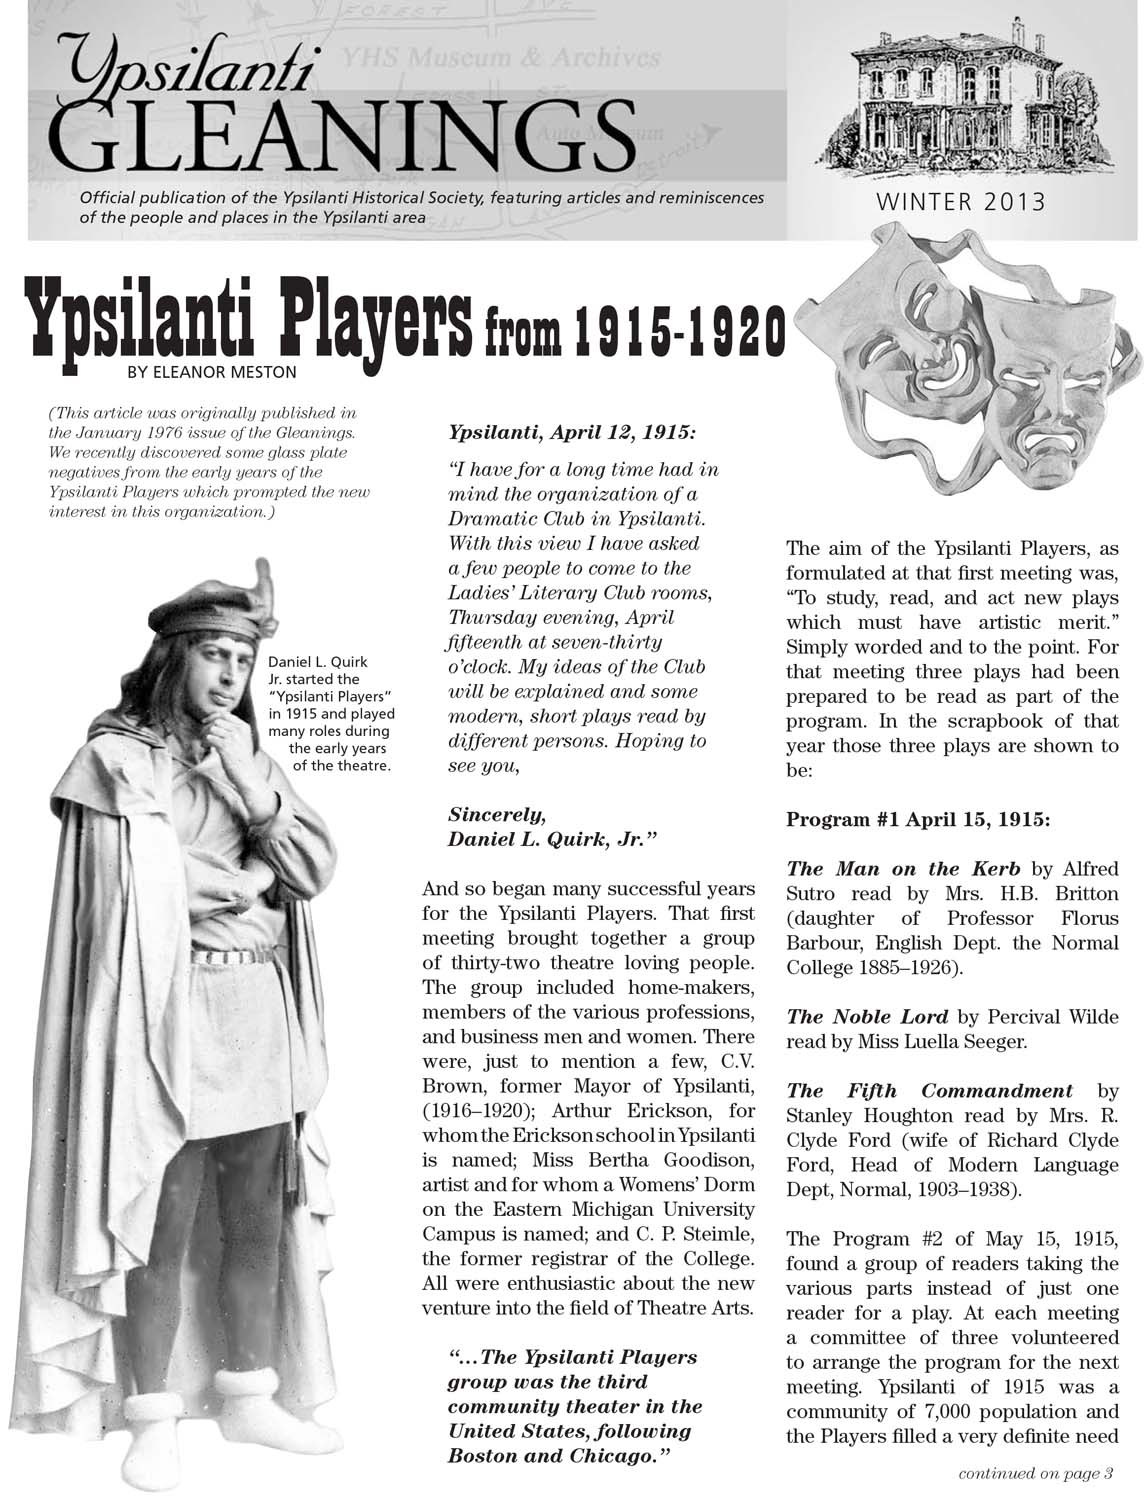 Ypsilanti Players From 1915 - 1957 image